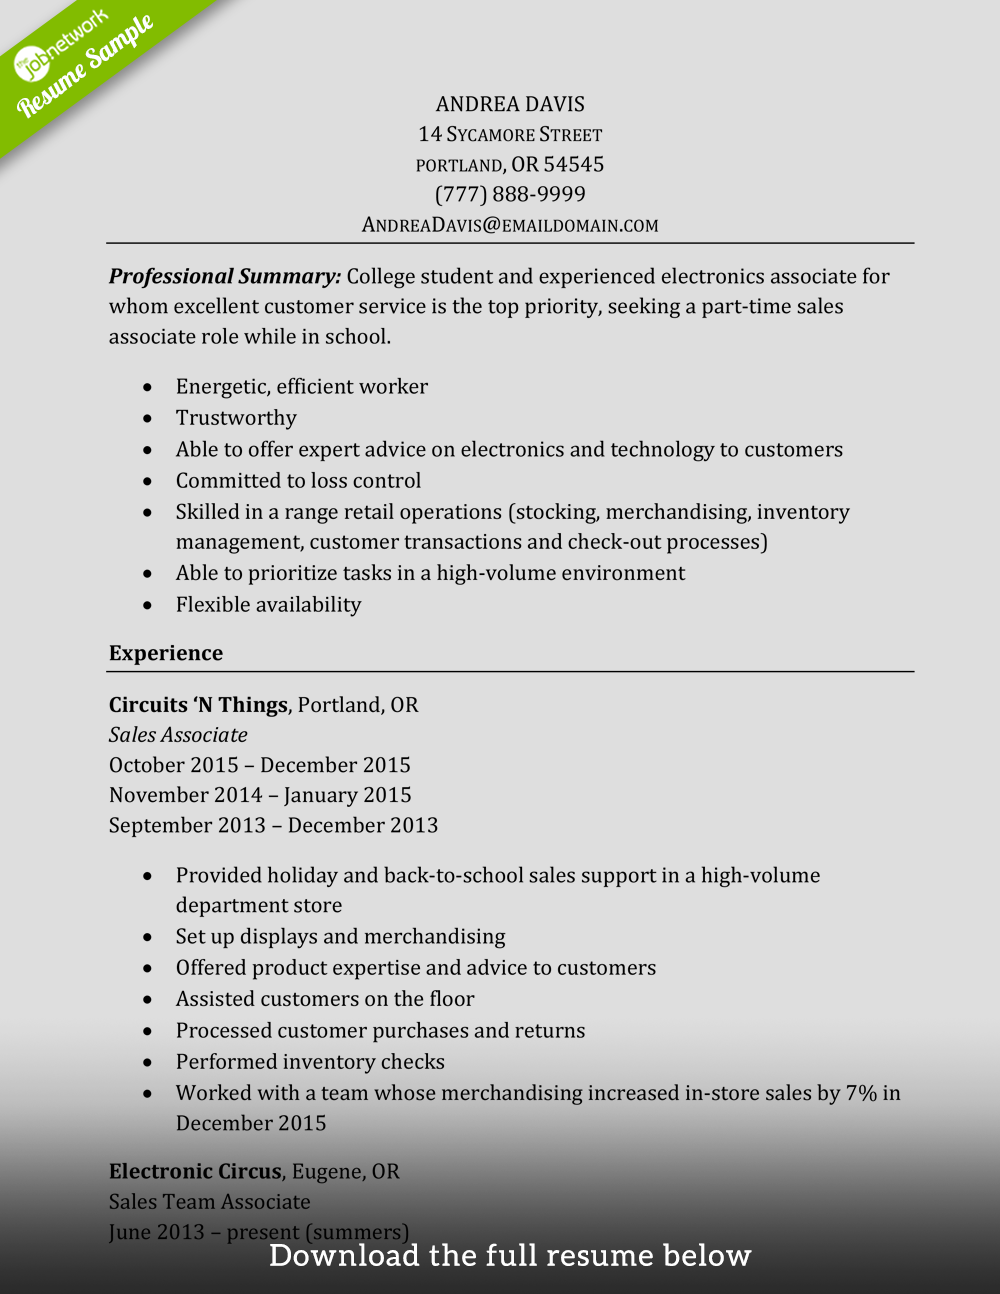 How to Write a Perfect Sales Associate Resume (Examples Included)